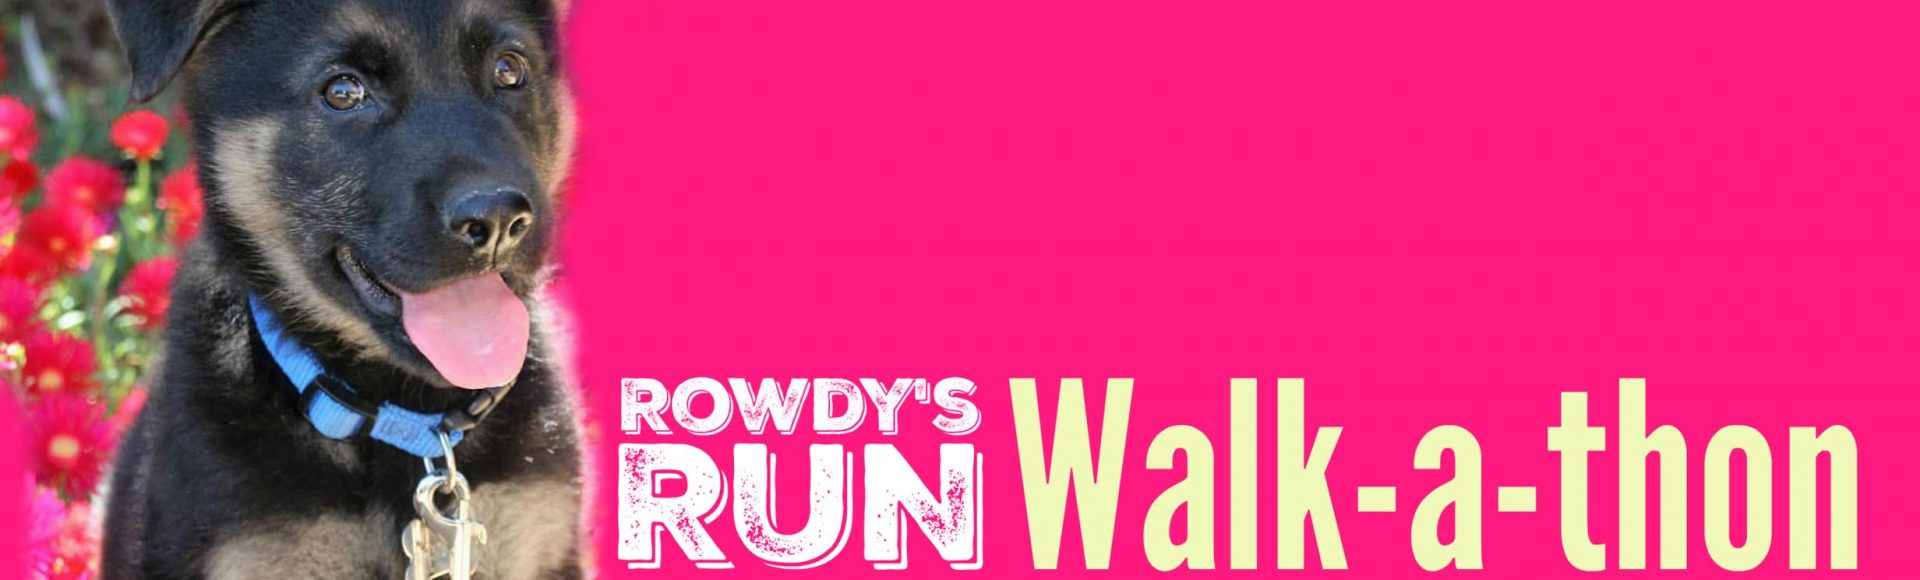 Join us for Rowdy's Run!